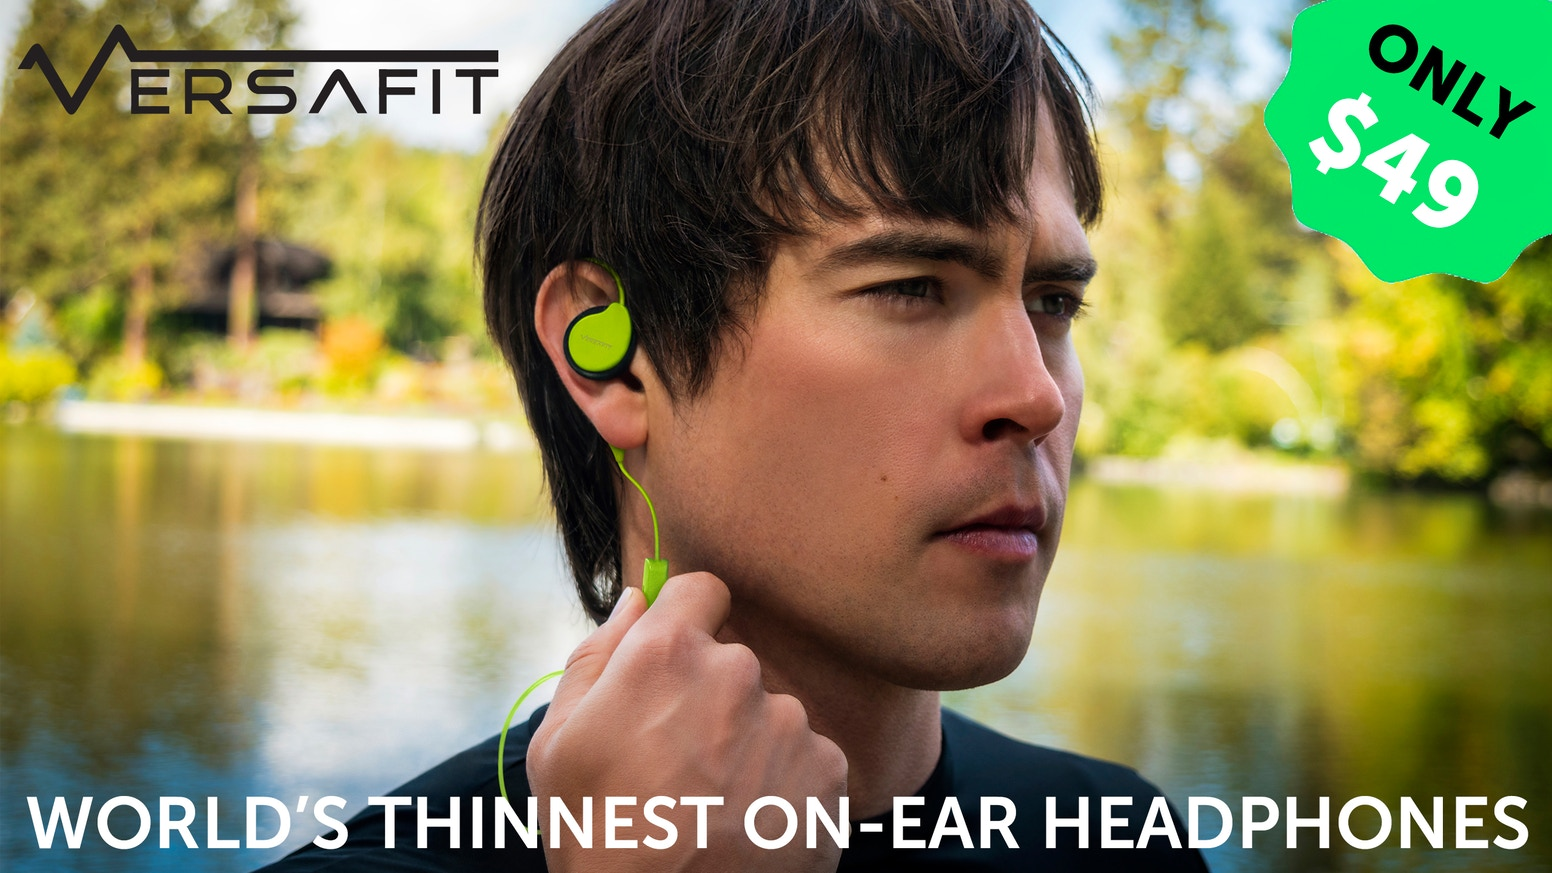 Incredibly thin, infinitely adjustable on-ear wireless headphones that fit under helmets and allow you to hear the world around you.